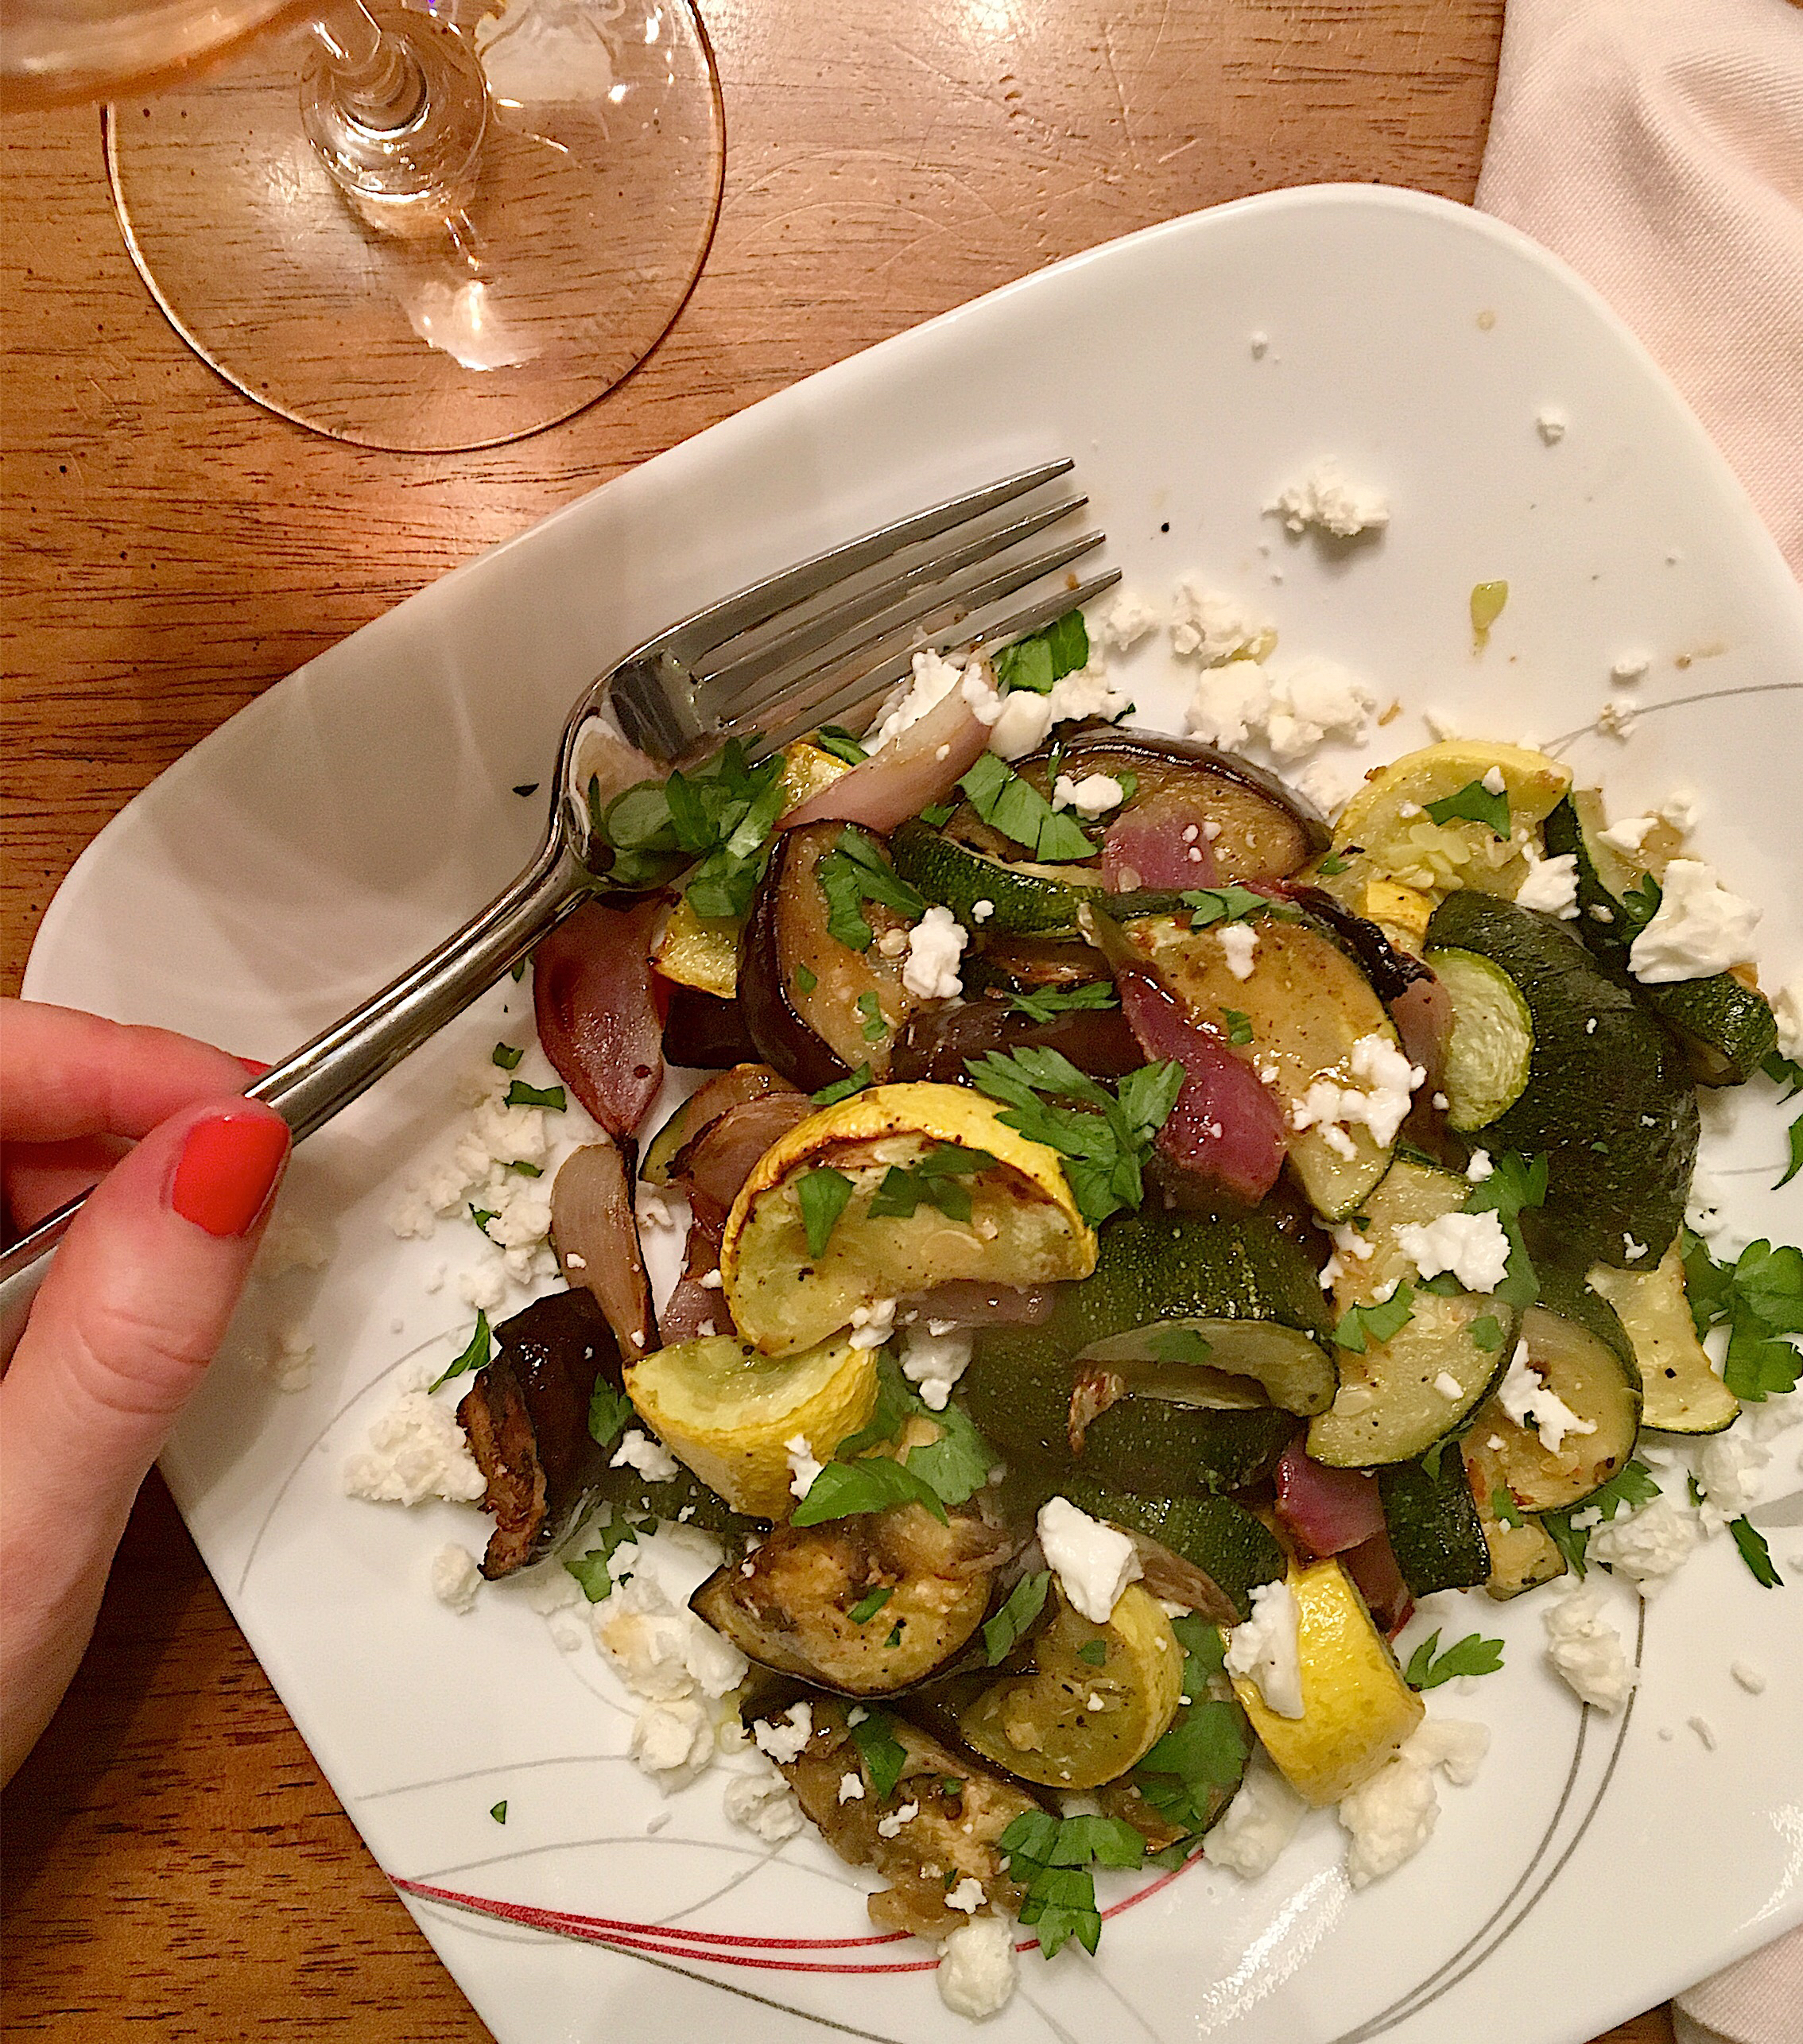 Roasted yellow squash, zucchini, eggplant, and red onion piled on a white plate, drizzled with red wine vinaigrette and sprinkled with feta cheese and parsley.